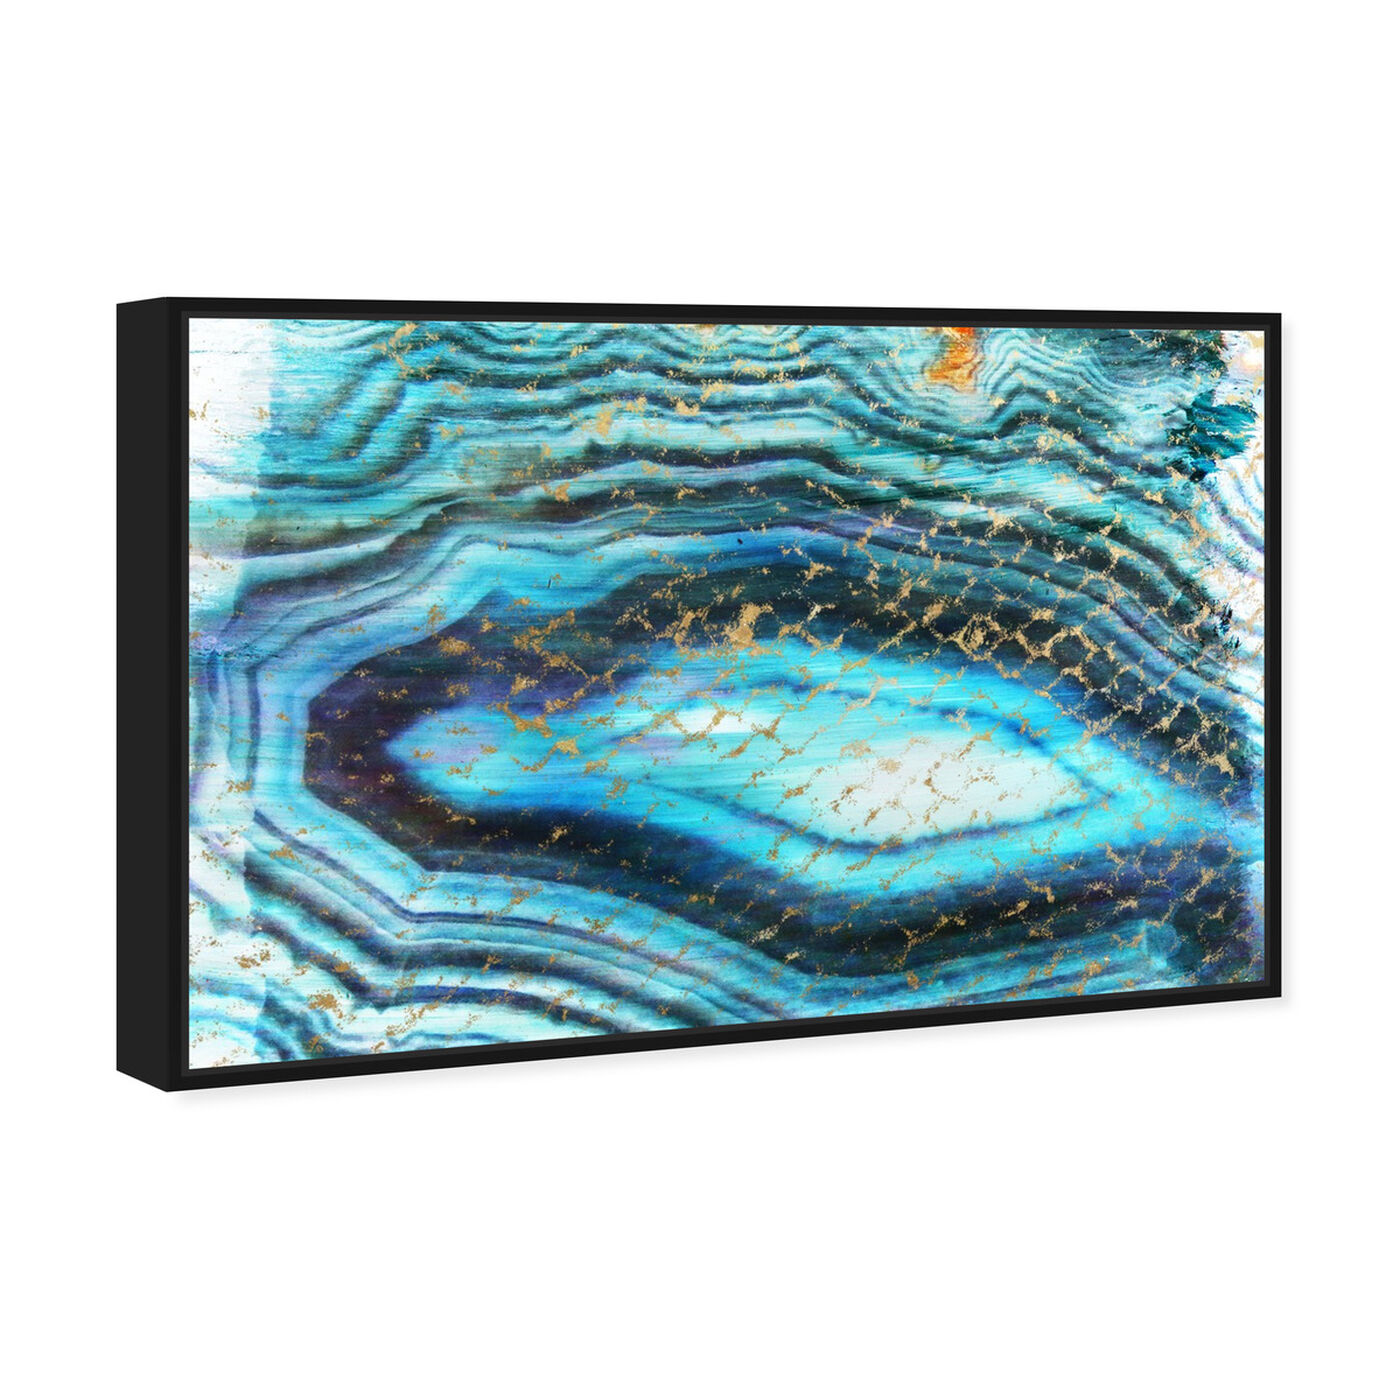 Angled view of Sea of Turquoise featuring abstract and crystals art.